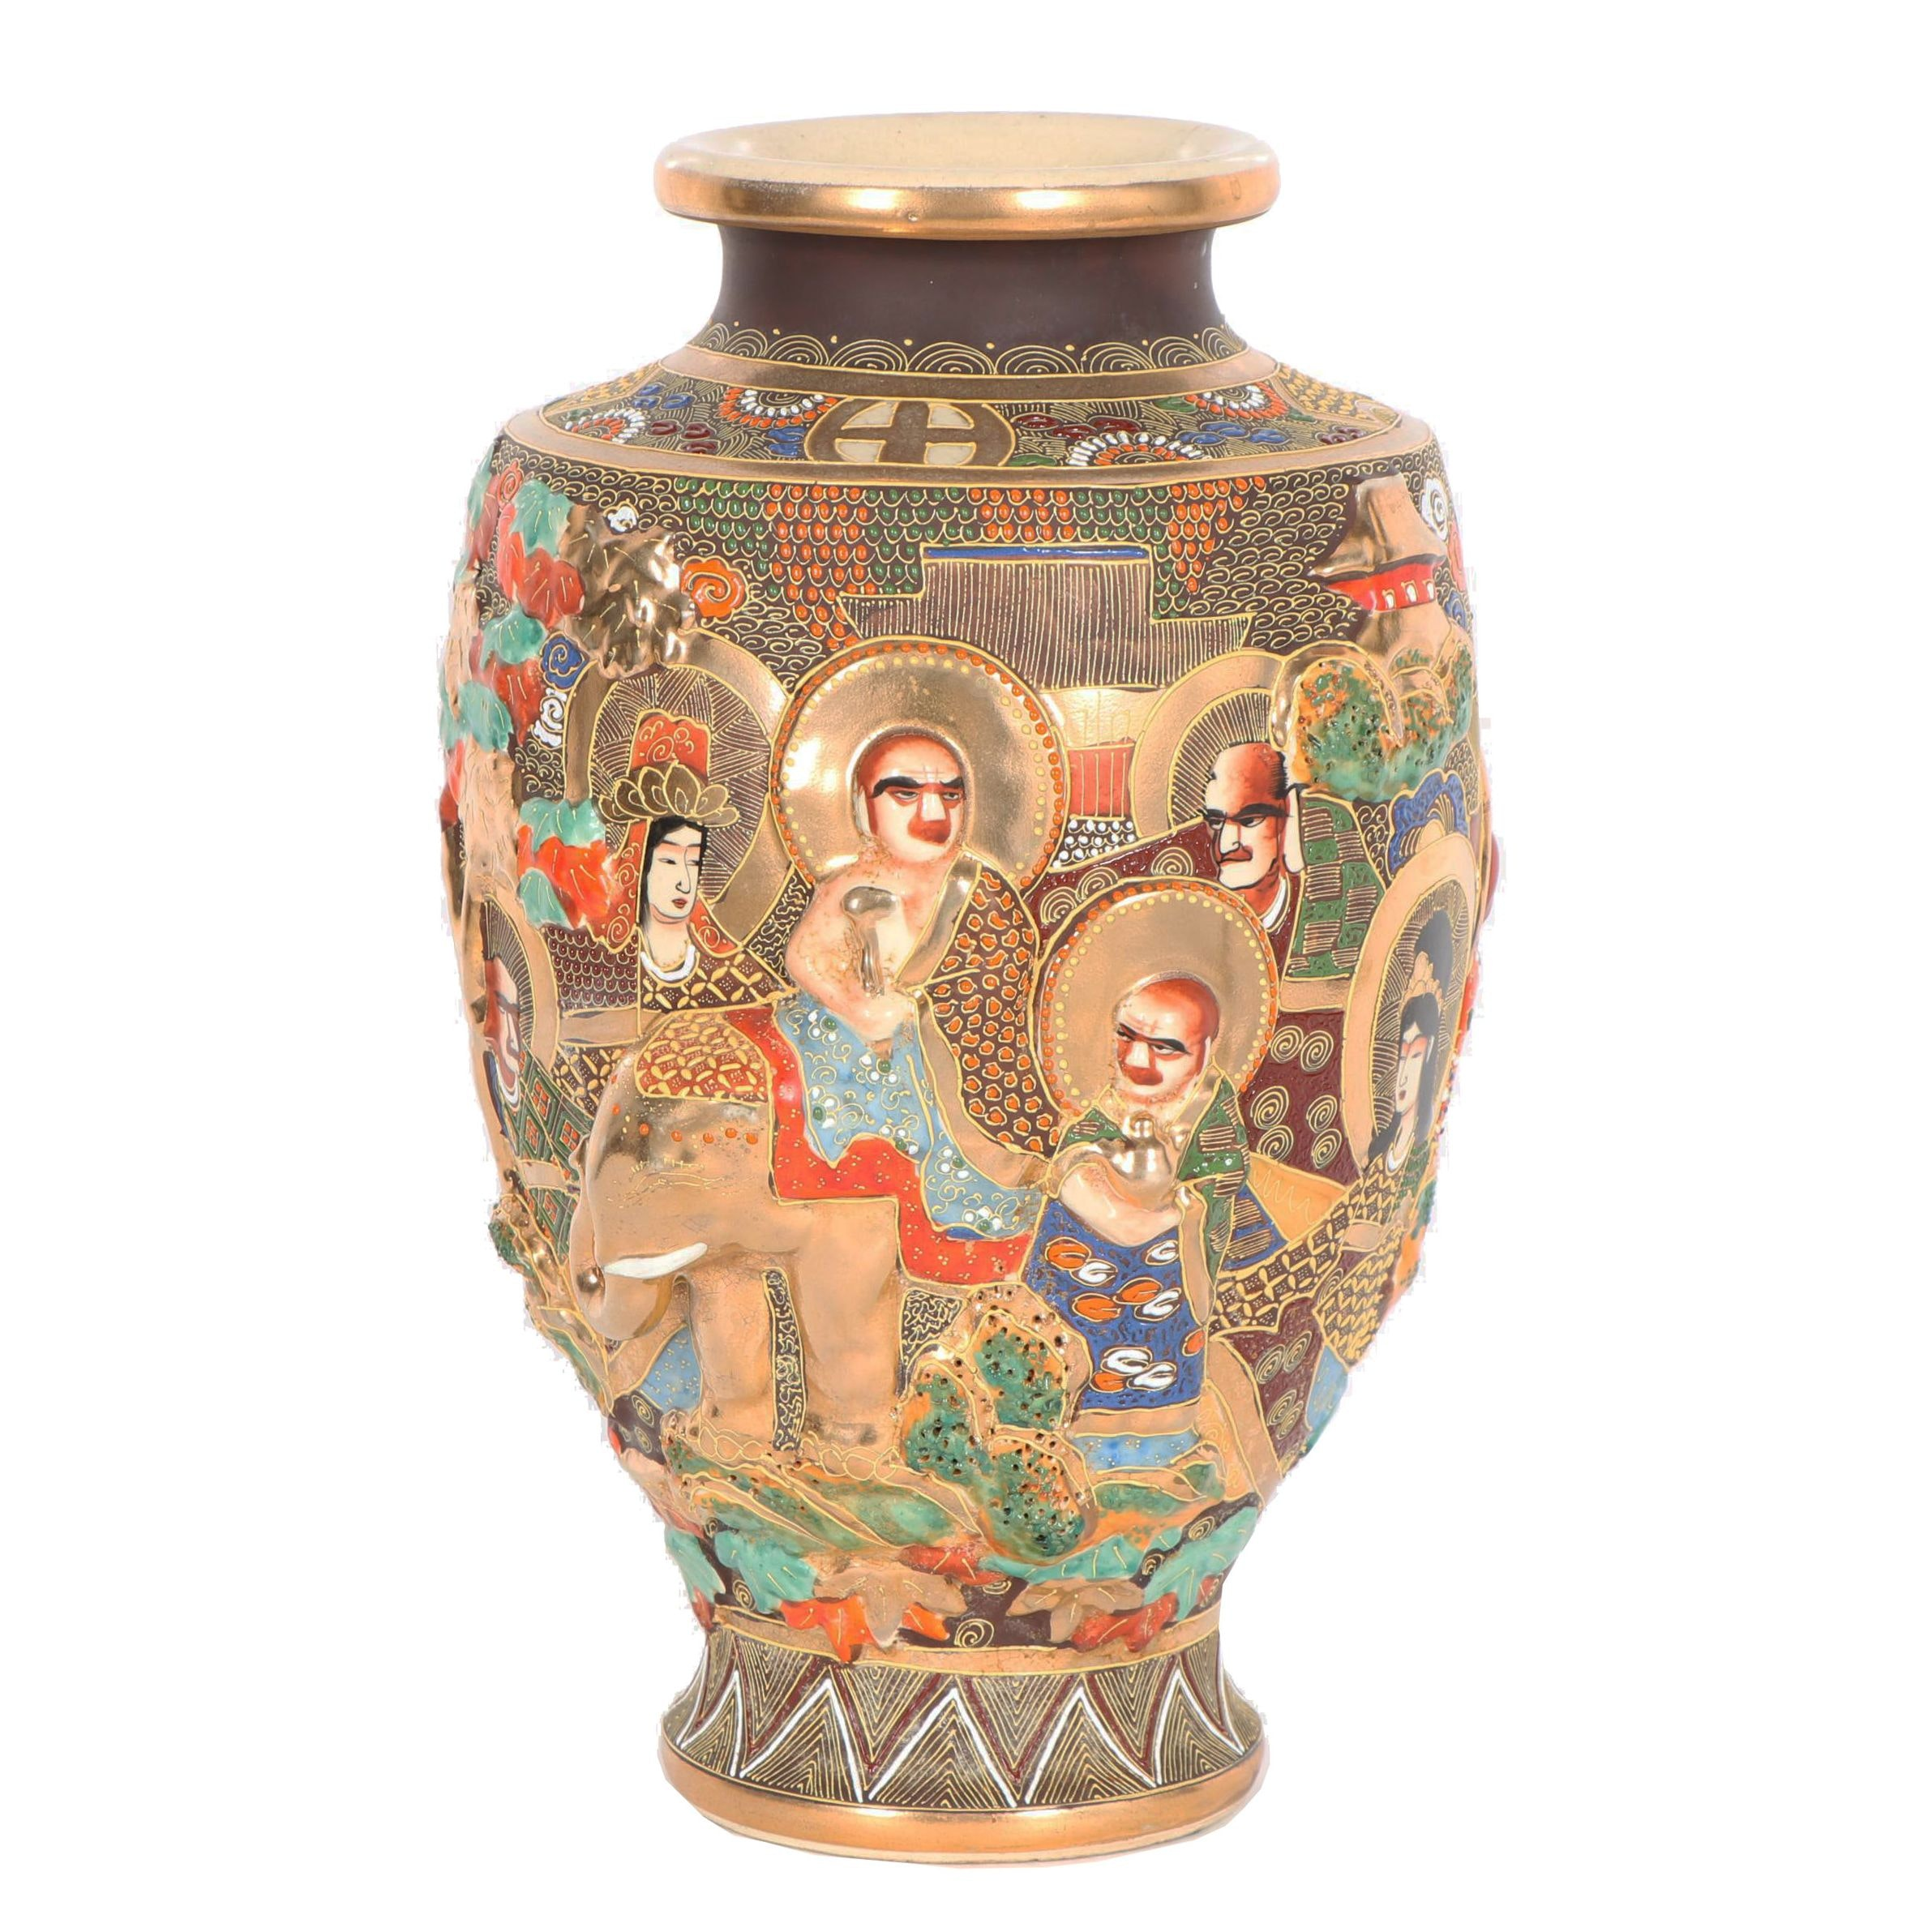 Japanese Satsuma Vase with High Relief Figurative Motifs